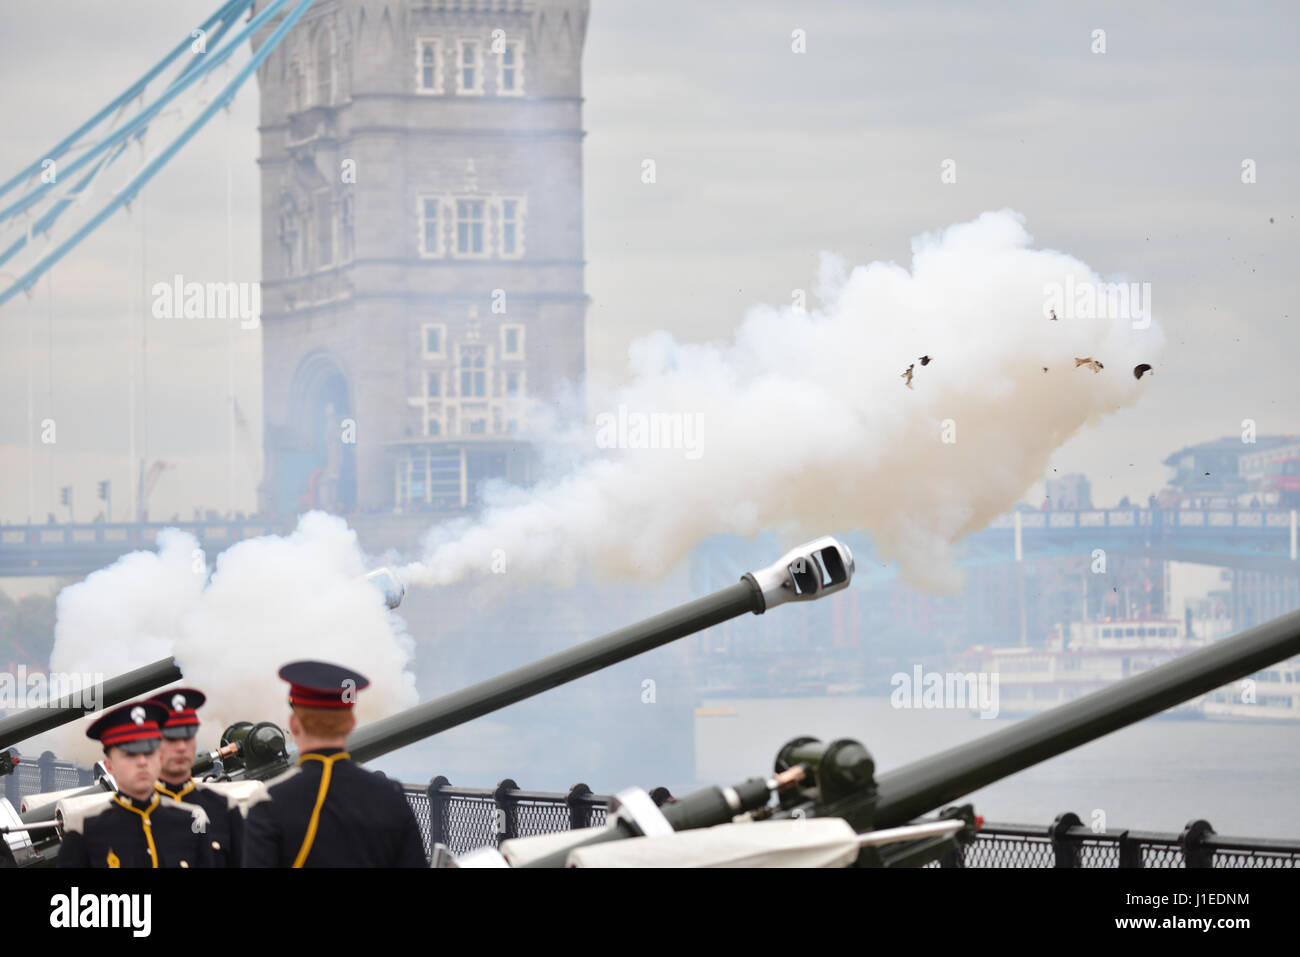 Tower of London, London, UK. 21st April 2017.  A 62 round gun salute to celebrate the Queen's 91st birthday. Credit: Stock Photo